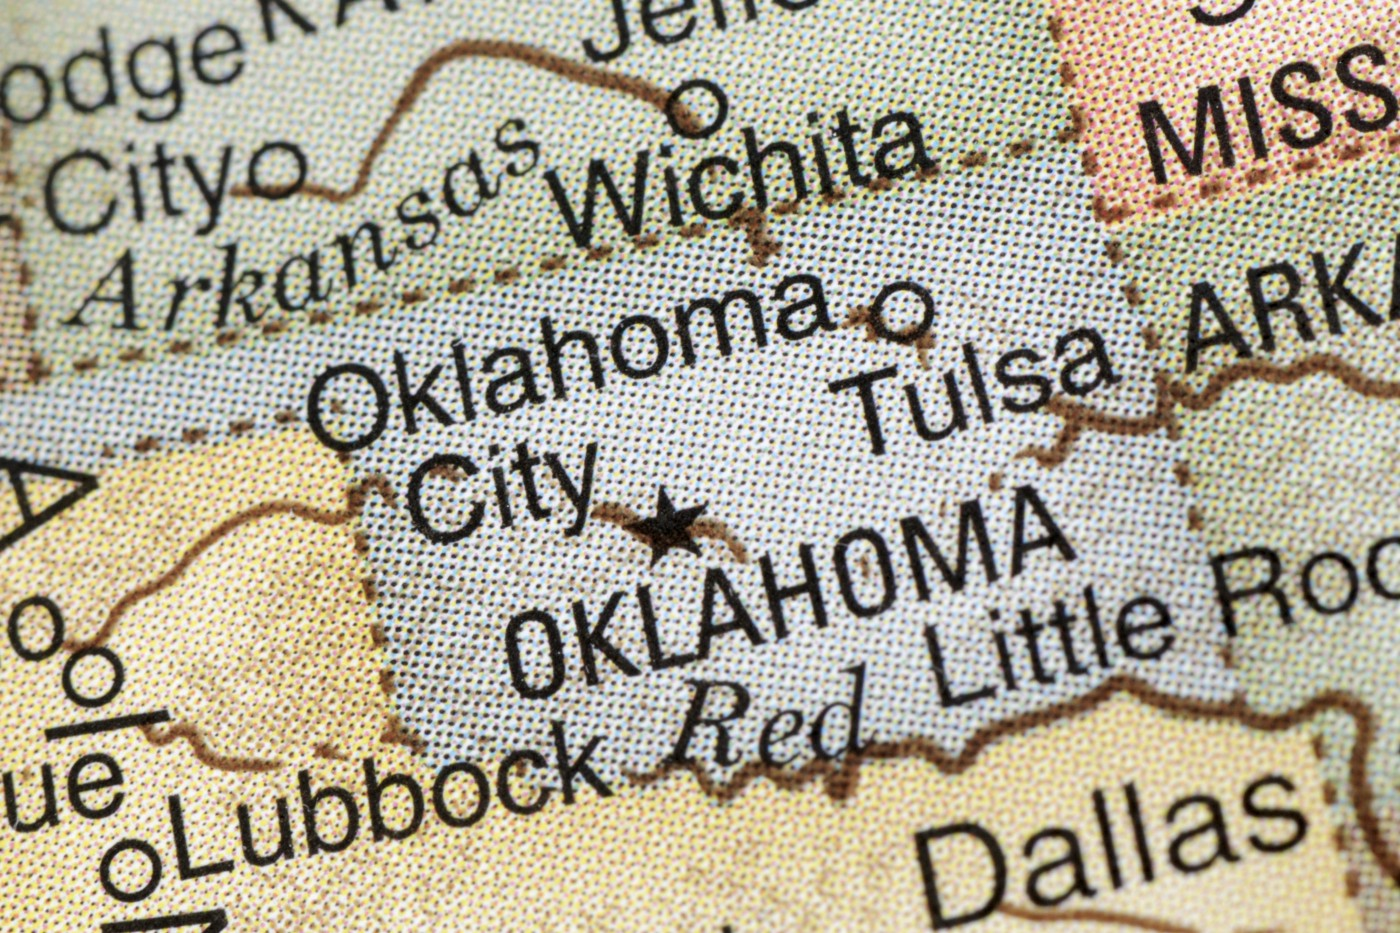 A close-up photo of Oklahoma on a map of the United States.